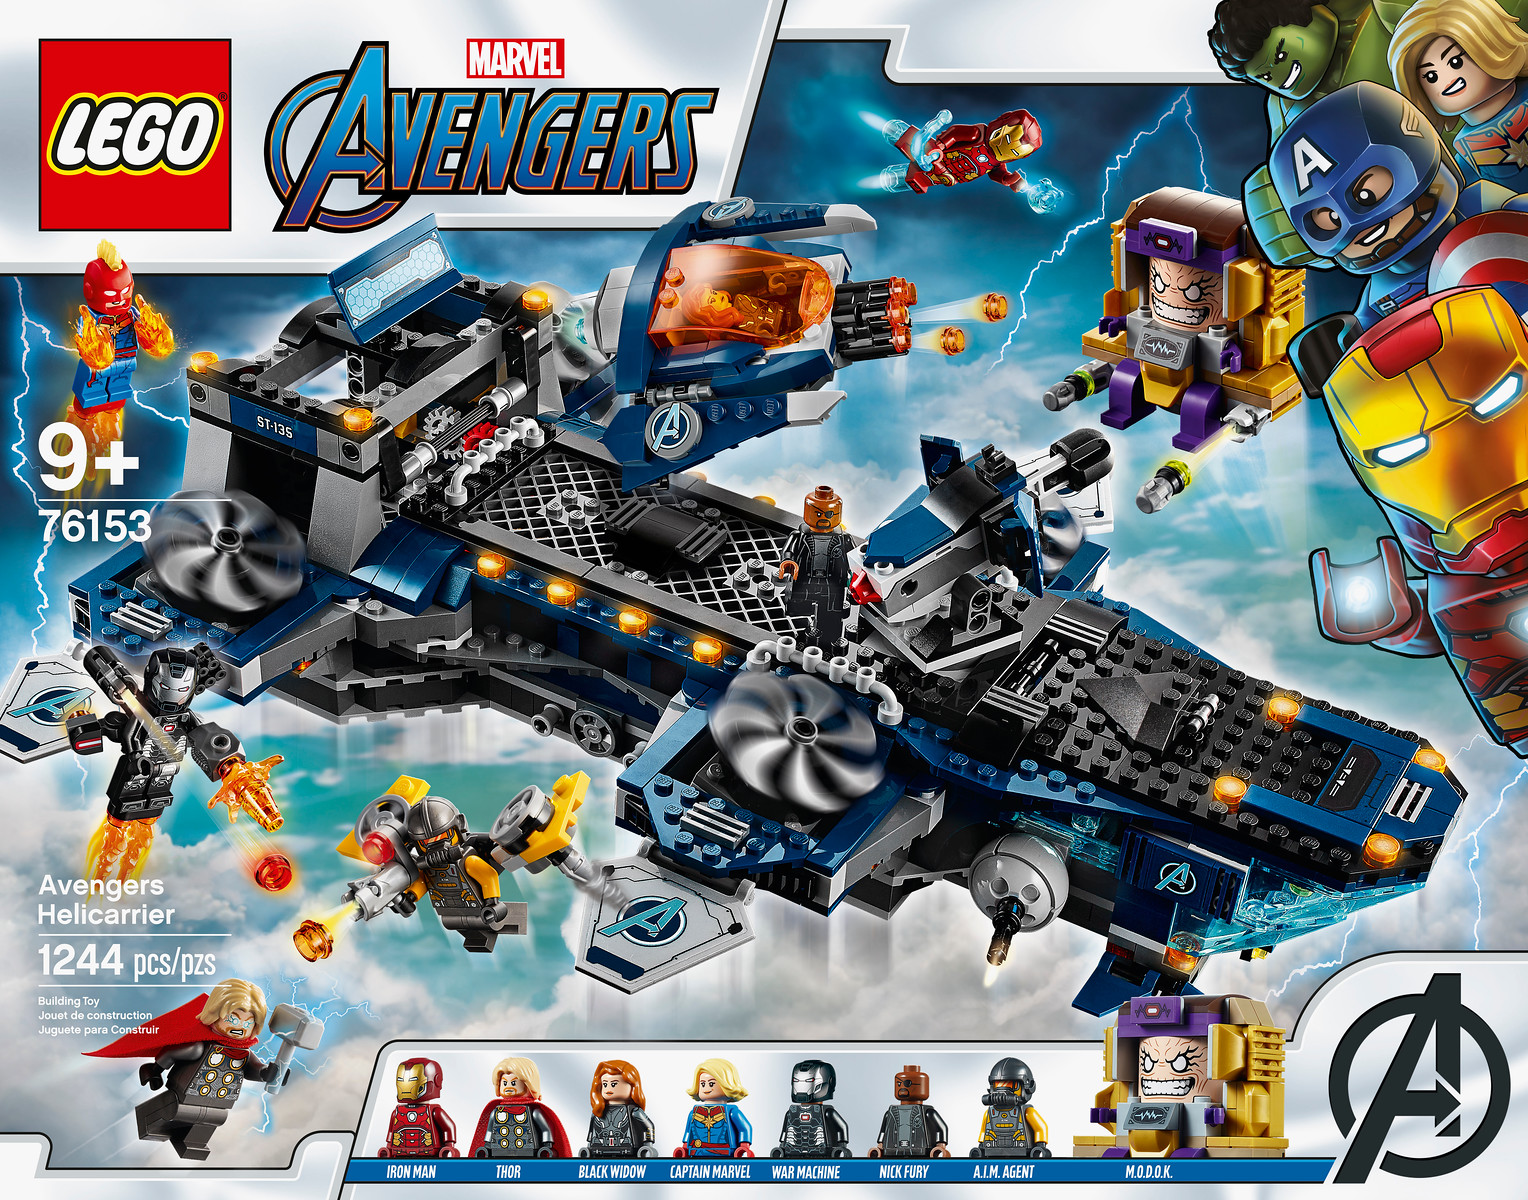 New LEGO Marvel Avengers Sets Coming to Target In June ...